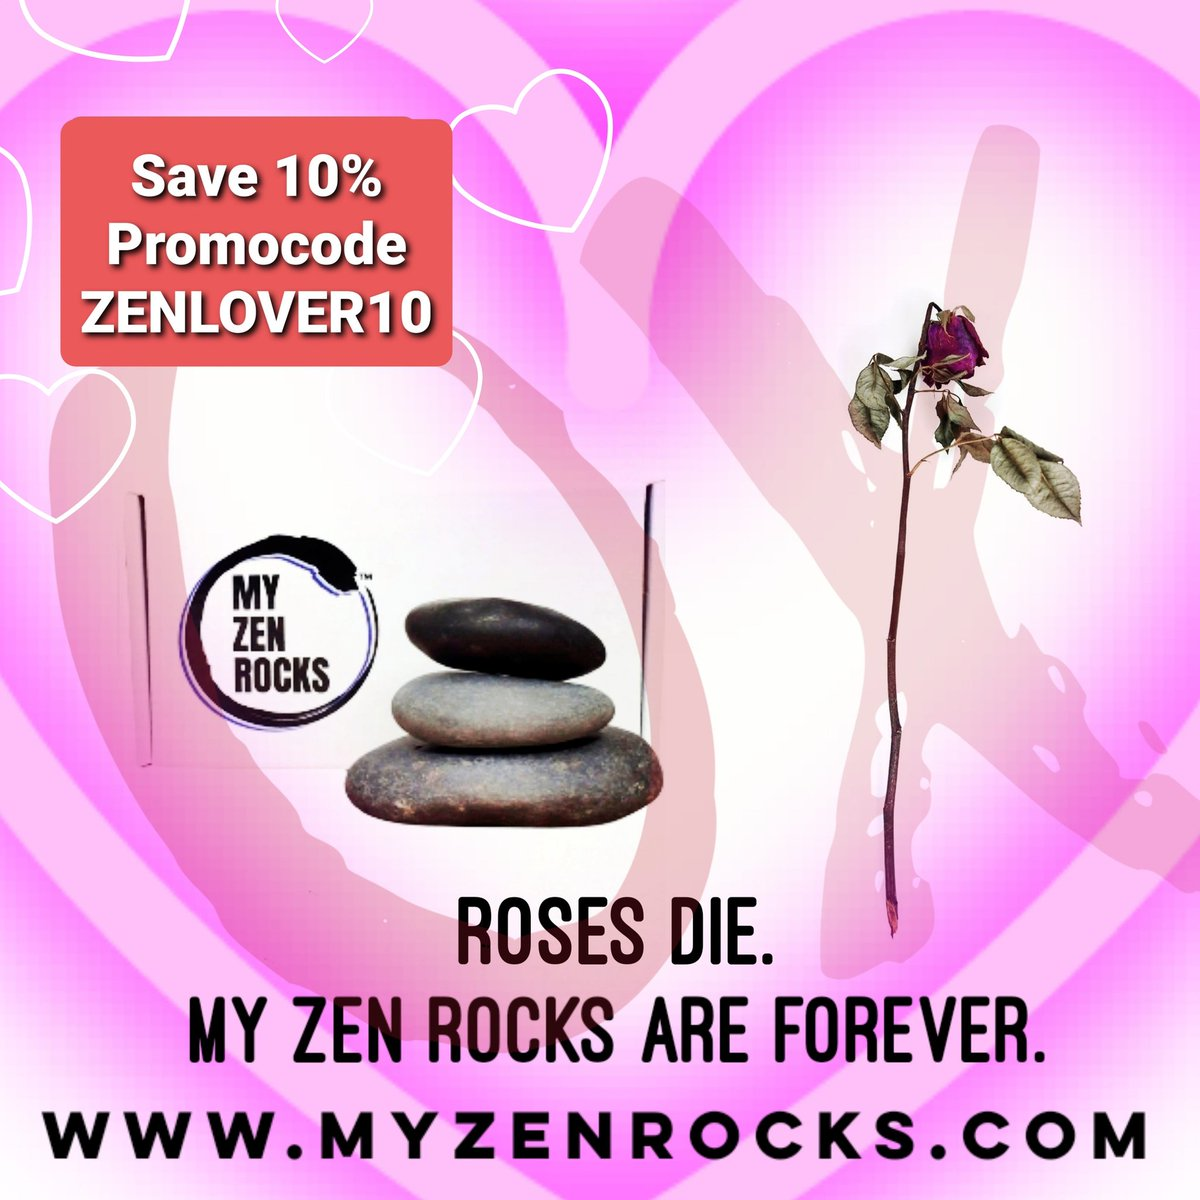 Don't buy her dying flowers... buy her endless Zen... #MyZenRocks #minimeditation #zen #thezenguide #roses #flowers #vday #gifts #promocode #save10 #zenlover #giftideas #giftsforher #giftsforhim #valentinesdaygifts #funnygifts #love